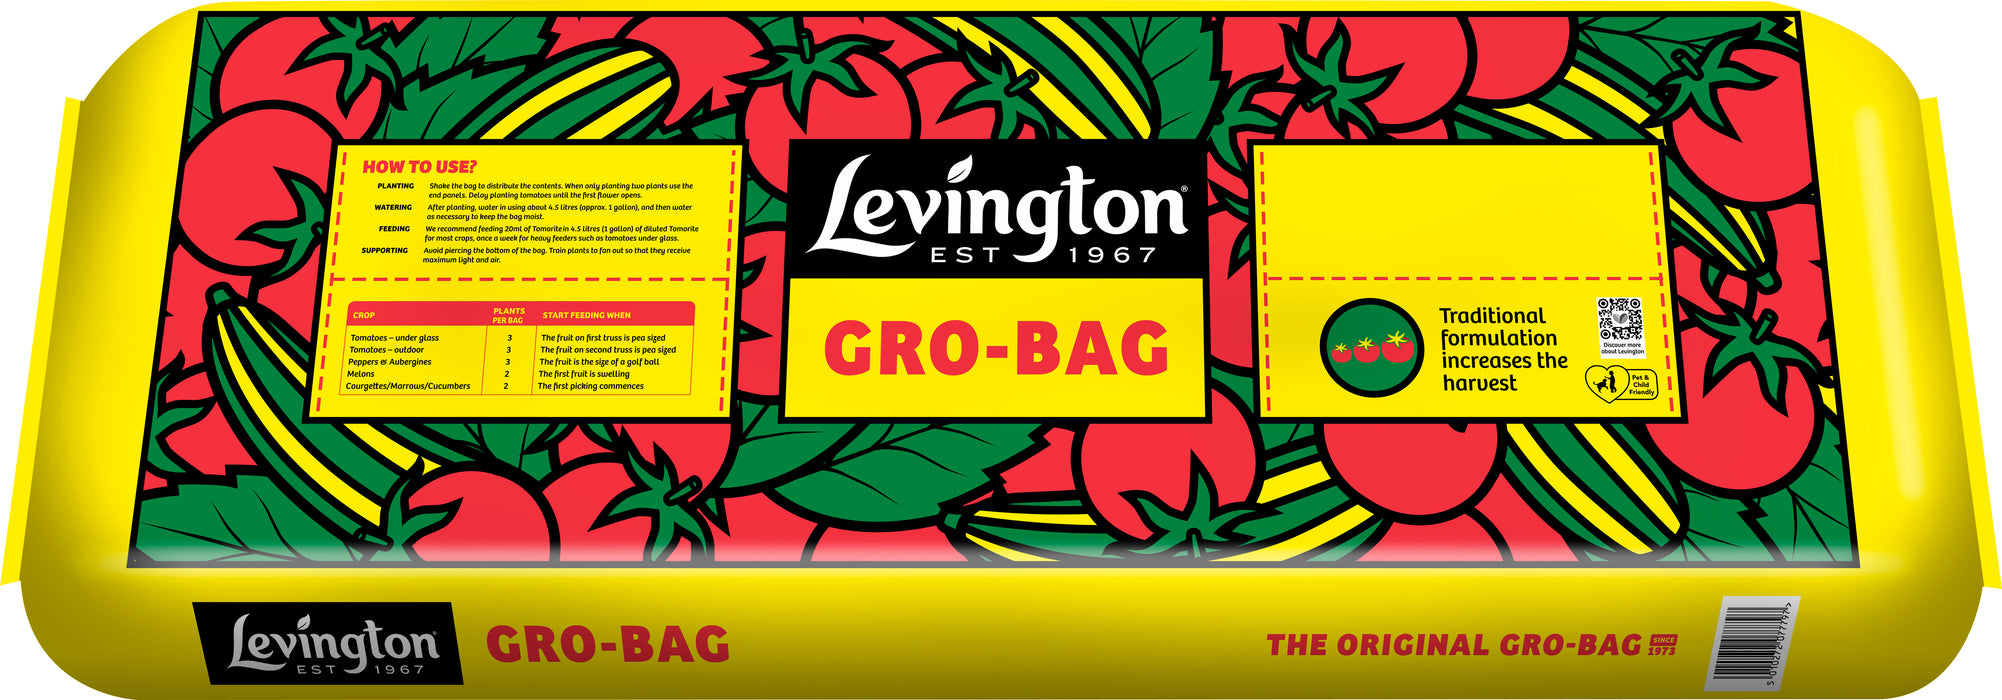 Levington Gro Bag